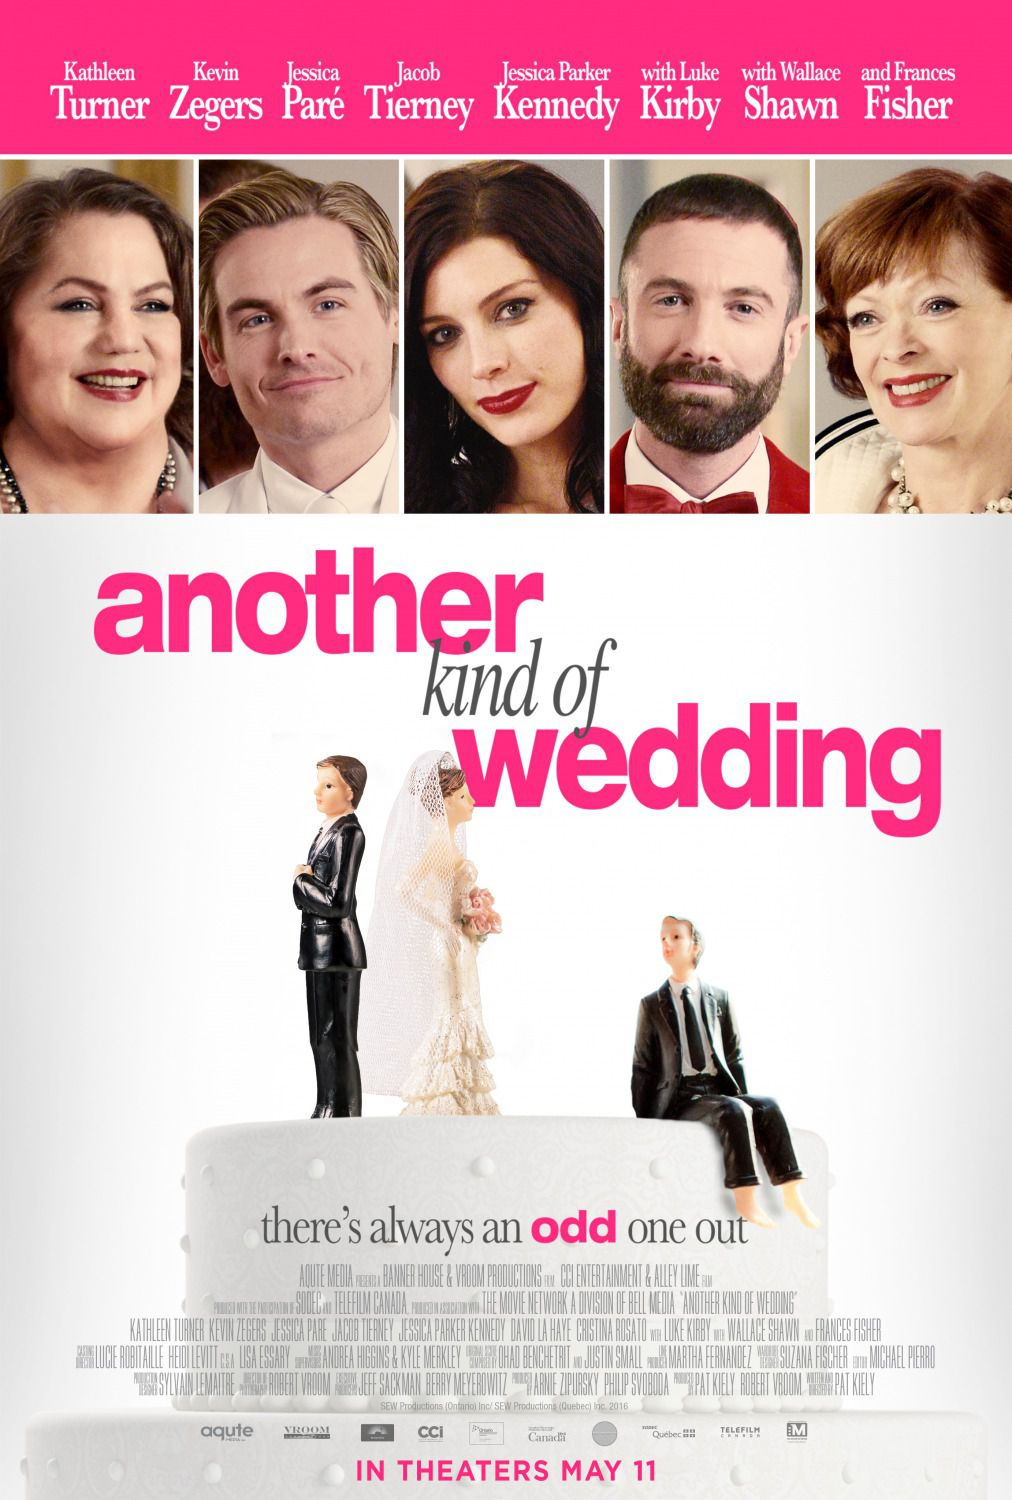 Another Kind of Wedding - There's always an odd one out - love comedy film poster